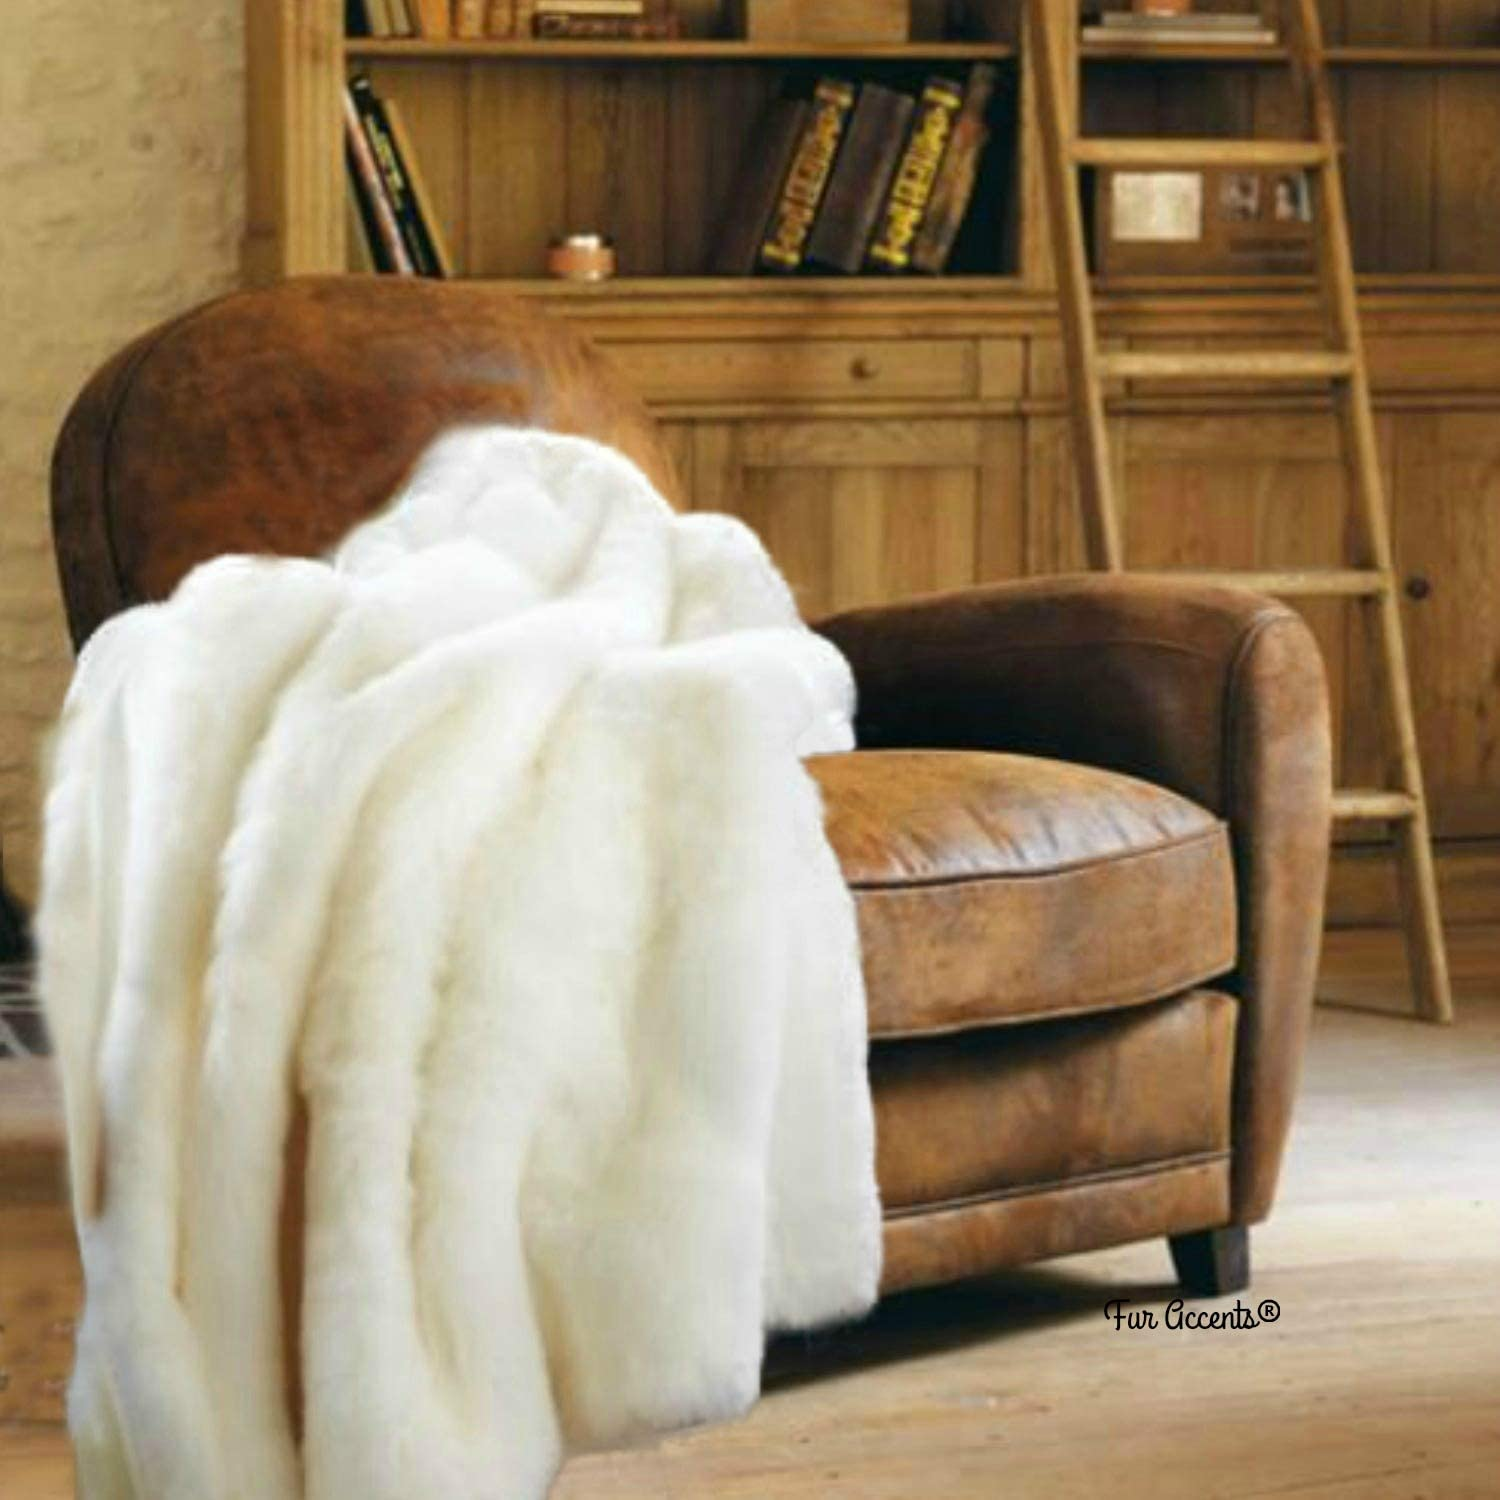 All stores are sold Gorgeous Fur Accents Throw Blanket Tissavel Mink Creamy Faux White 4'